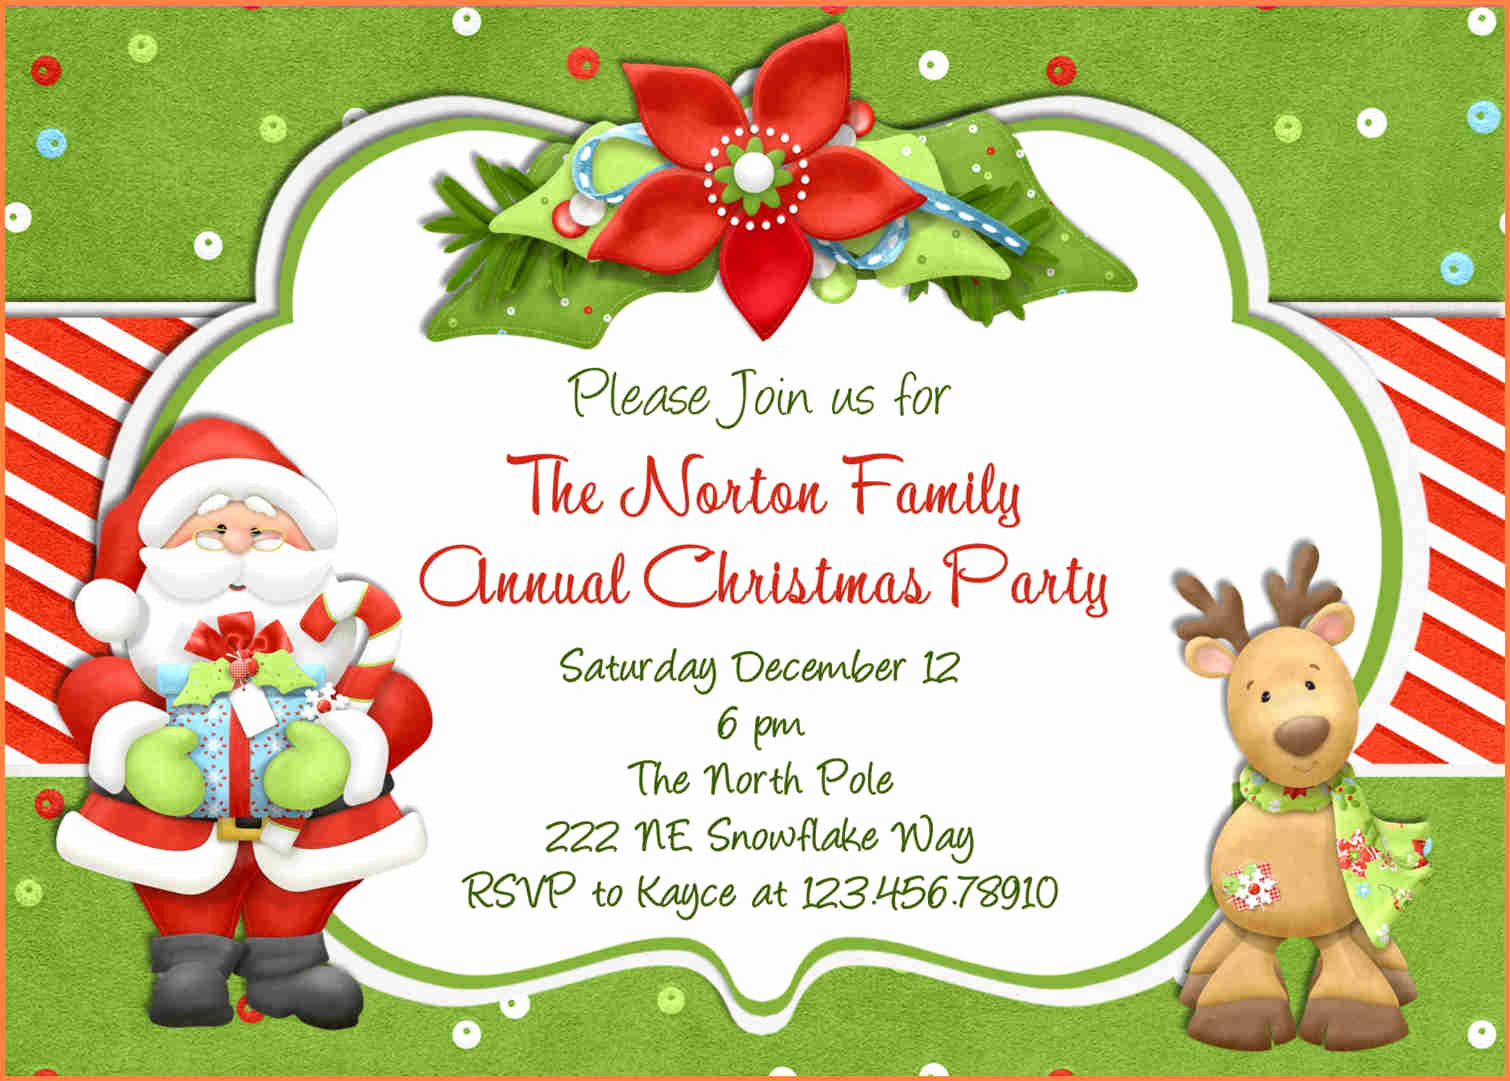 Holiday Party Invitation Template Fresh 15 Christmas Party Invitation Template